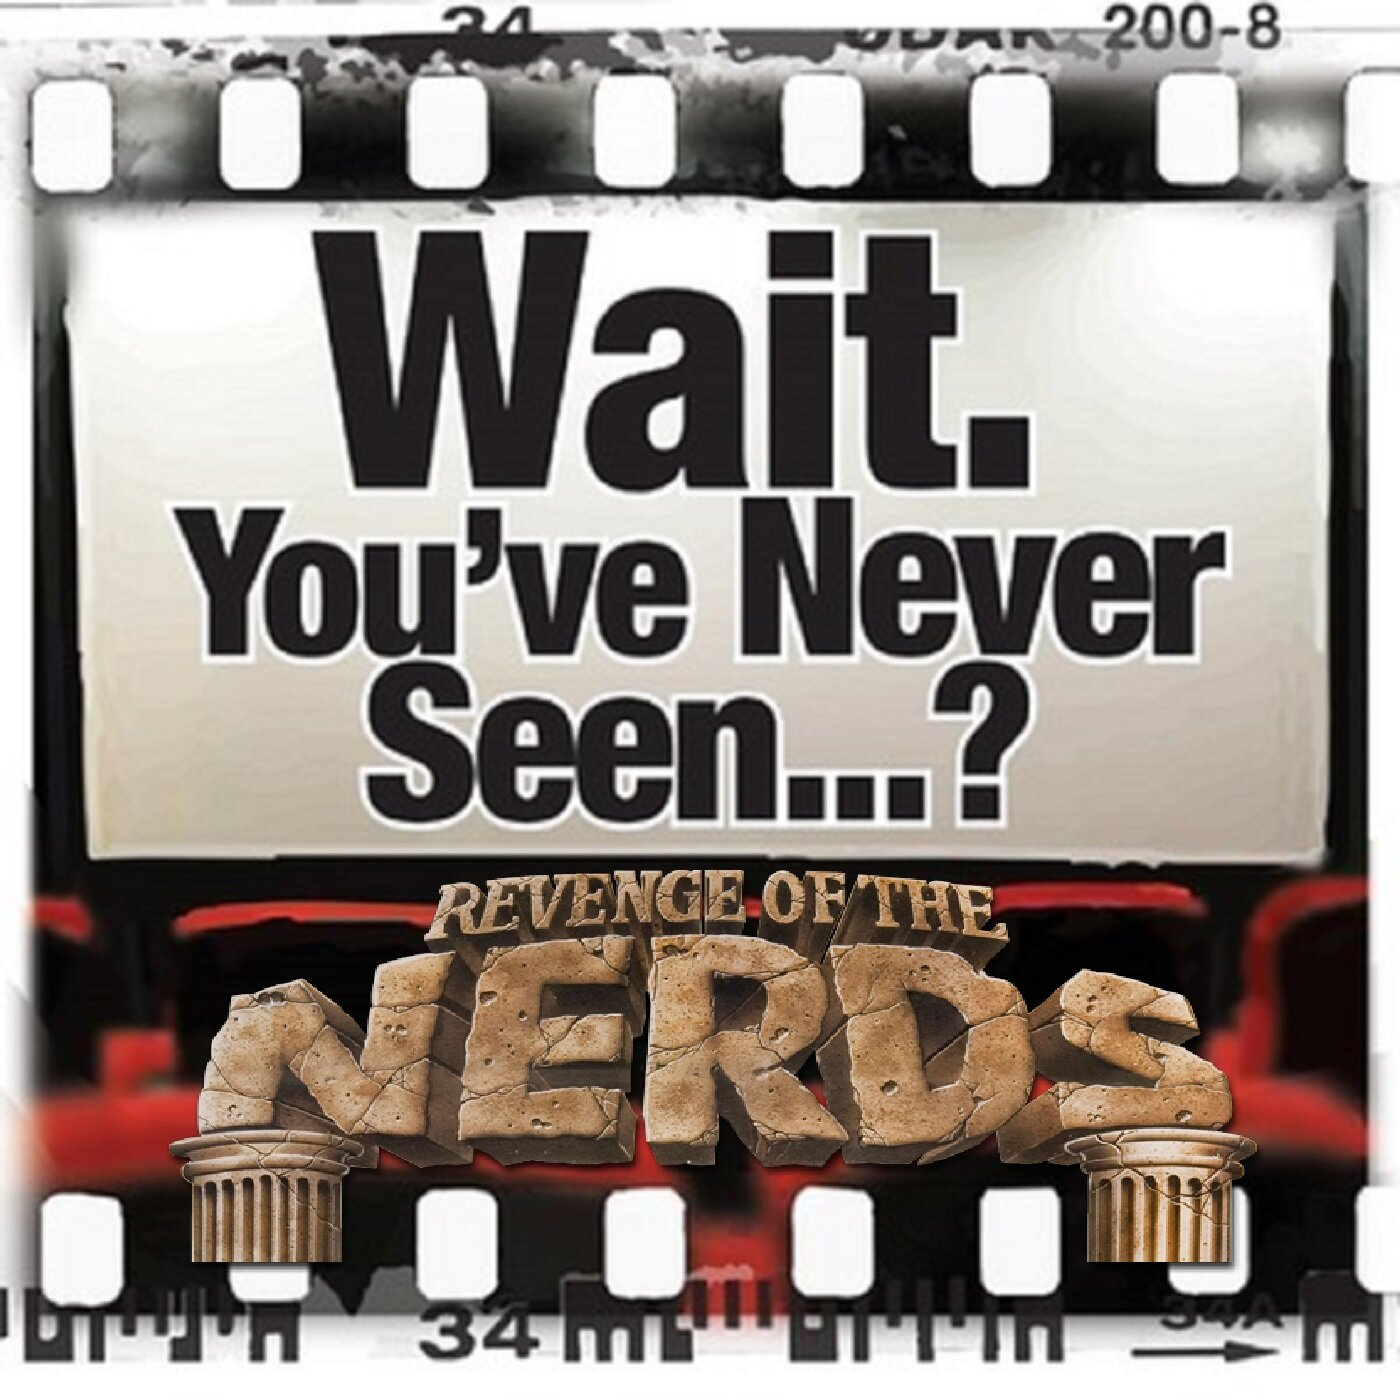 Episode 063: Revenge of the Nerds